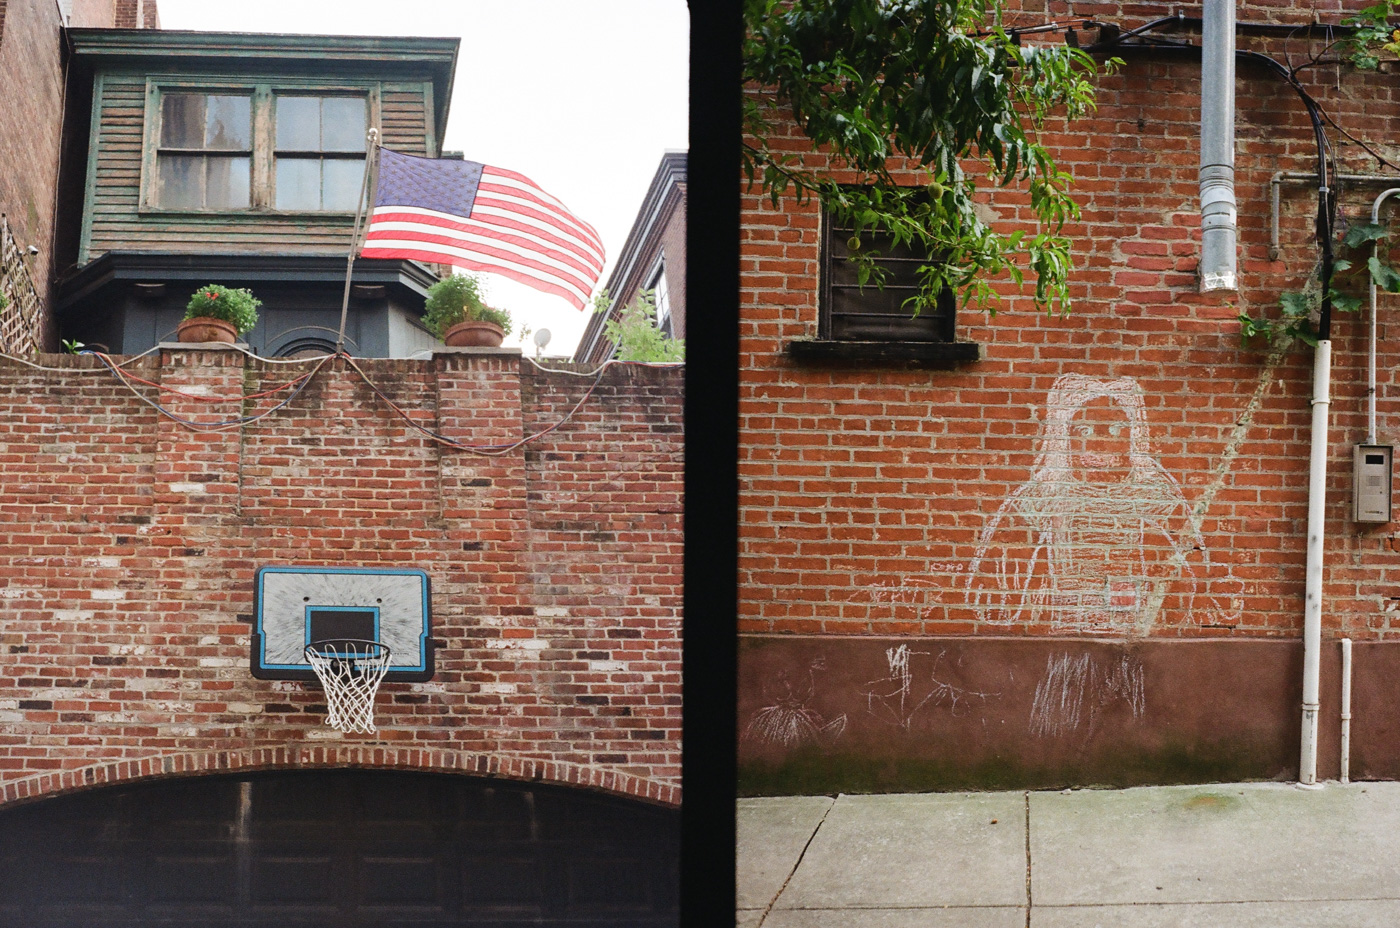 Basketball Hoop and Chalk Drawing